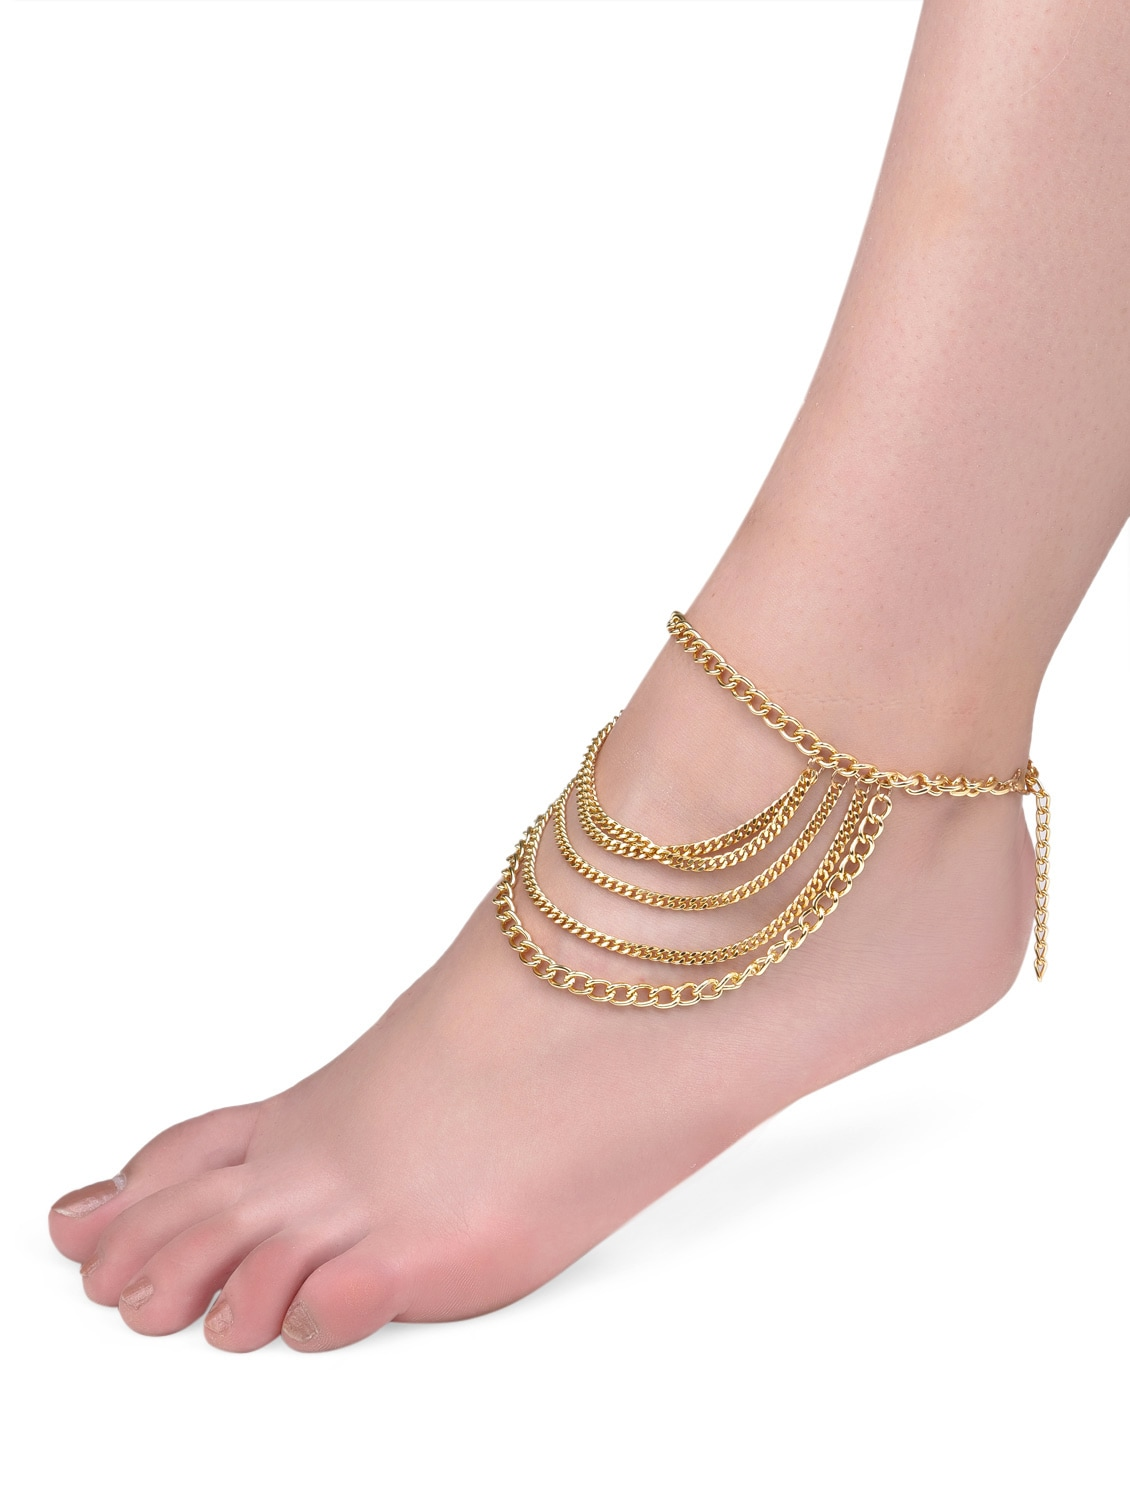 a buy wholesale anklet anklets with thread black in strung shop an dotted s beads fashion online rs women jewellery